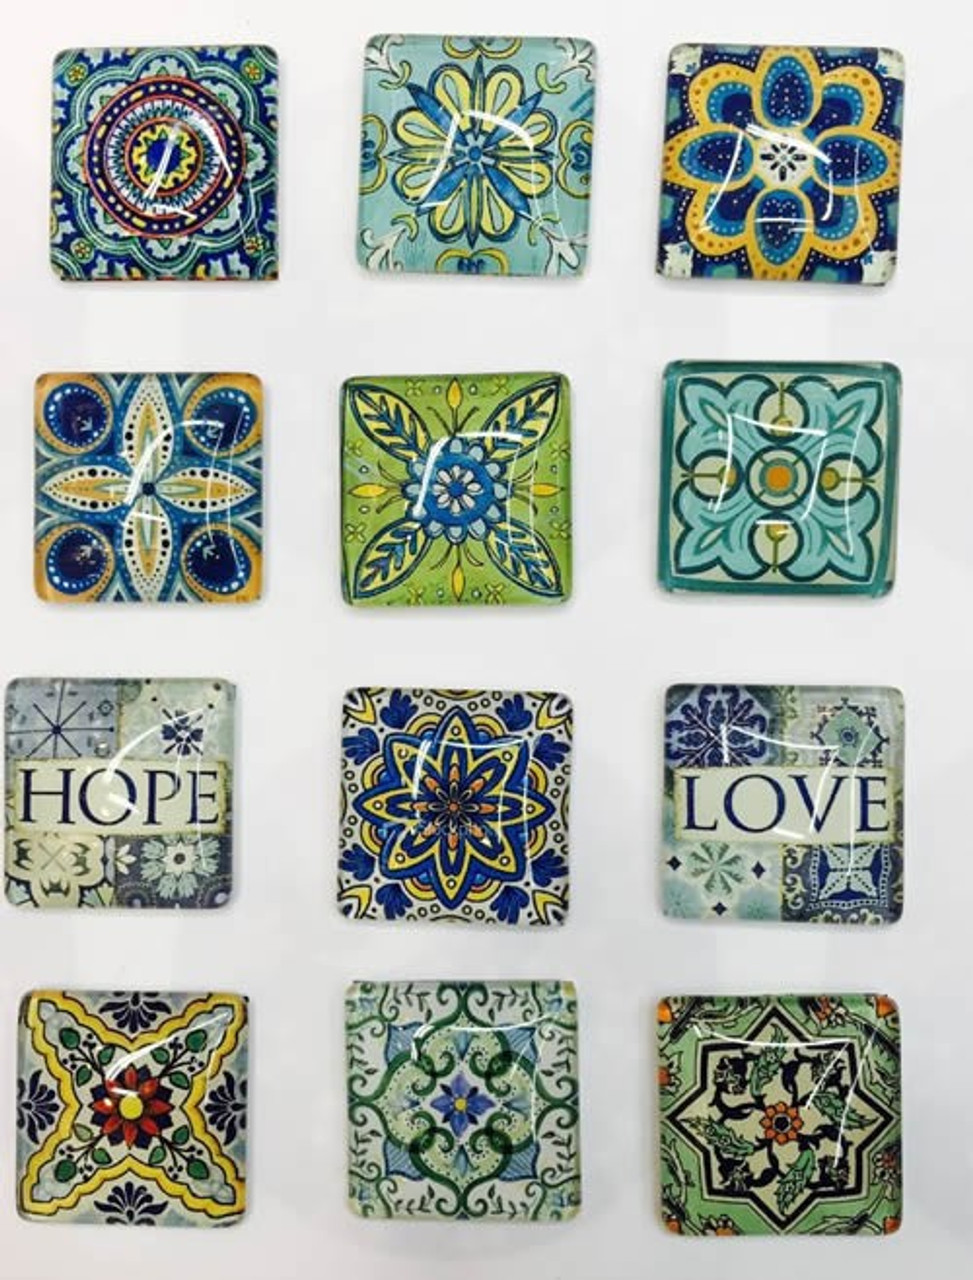 20 Hope & Love 20mm Square Glass Cabochons